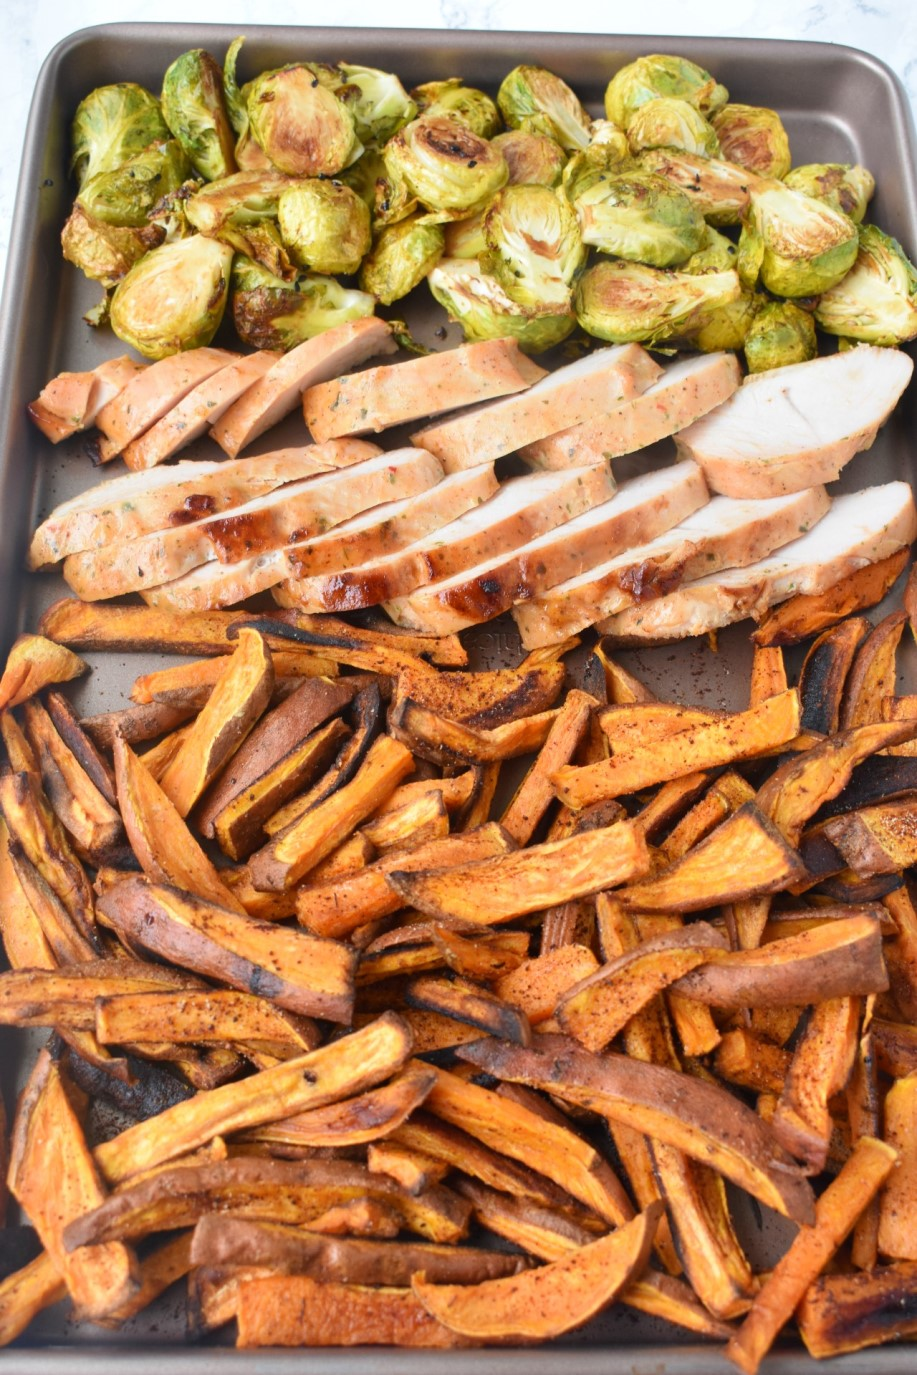 Crispy Baked Sweet Potato Fries are super easy to make, healthy and flavorful with chili, garlic and onion powder! #fries #sweetpotatoes #sweetpotato #frenchfries #healthy #cleaneating